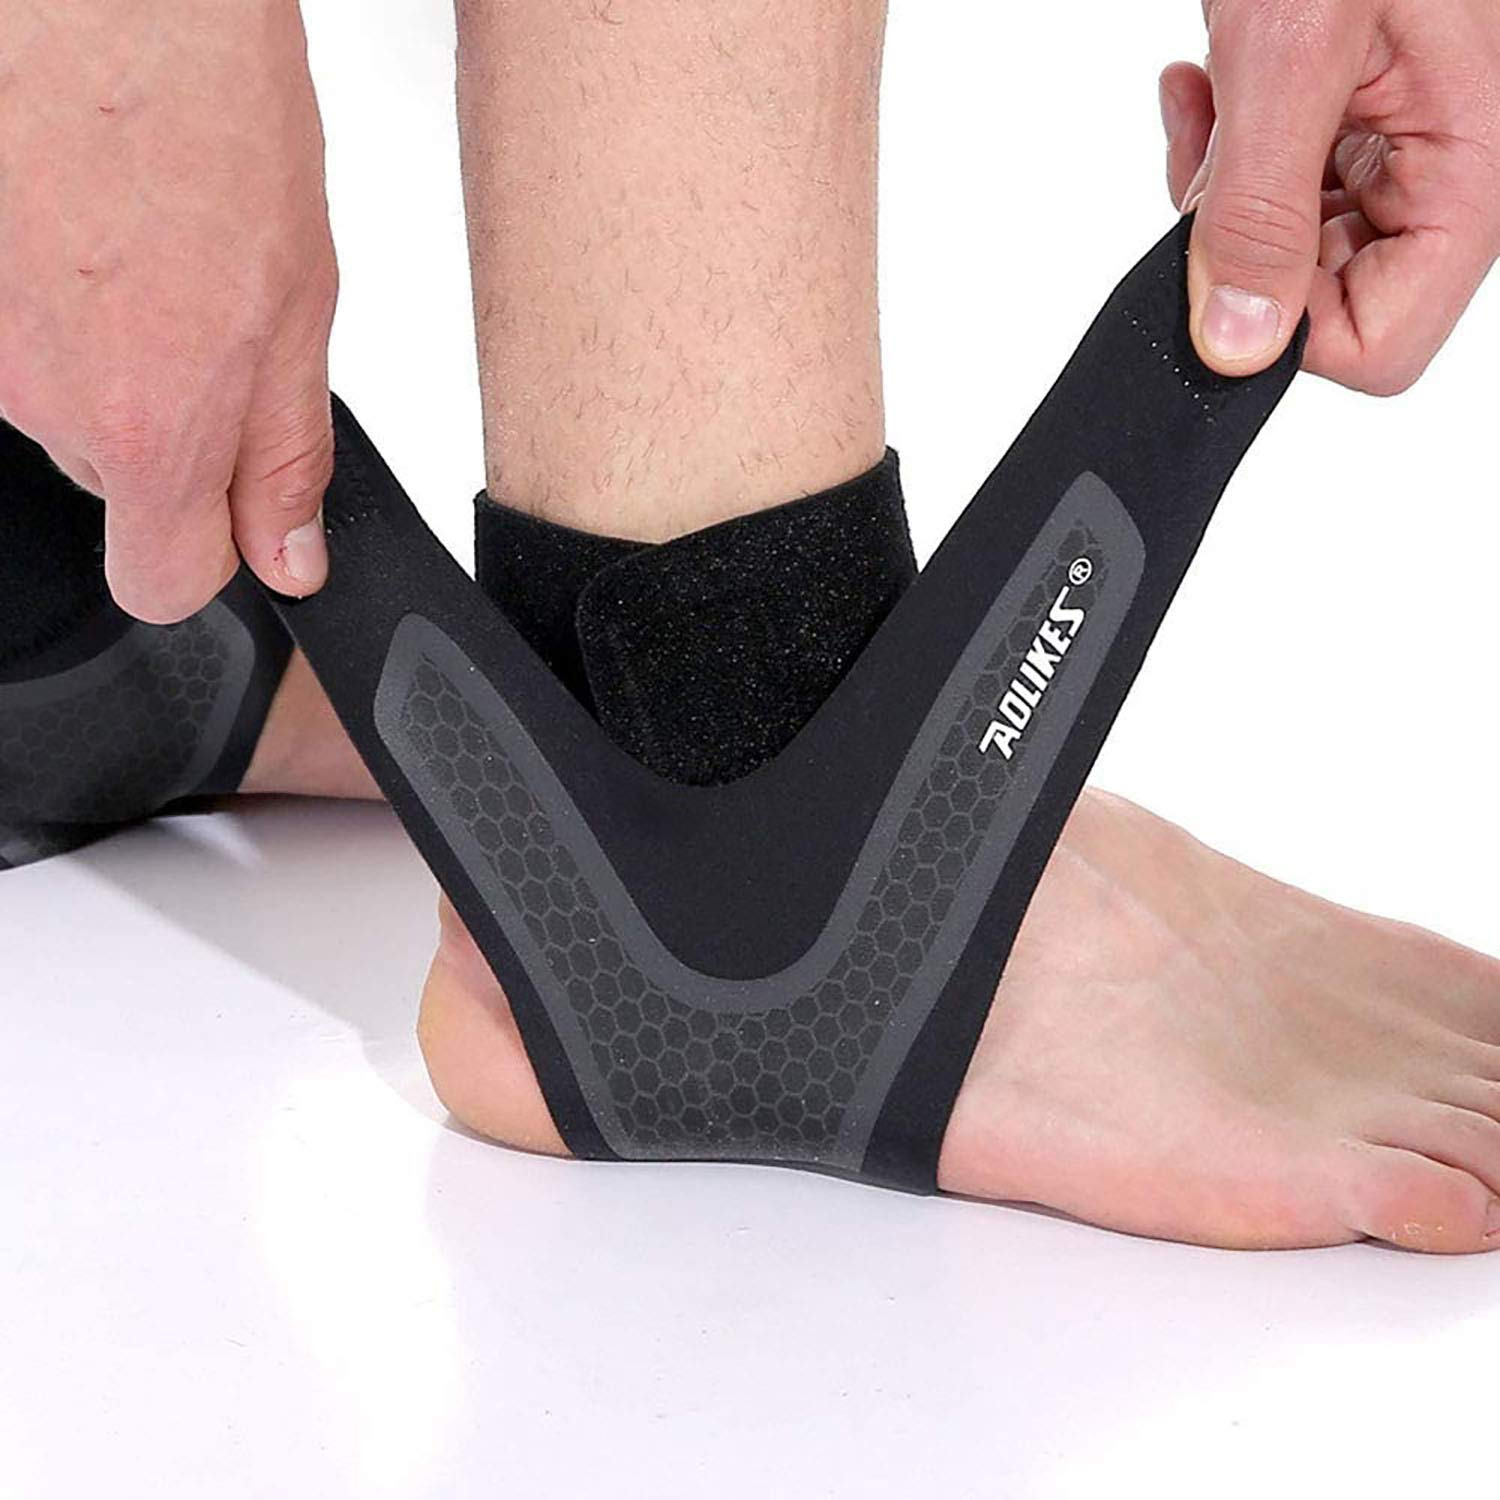 SPOTBRACE Ankle Support for Men Low price Breathable Women Long Beach Mall Neoprene and -